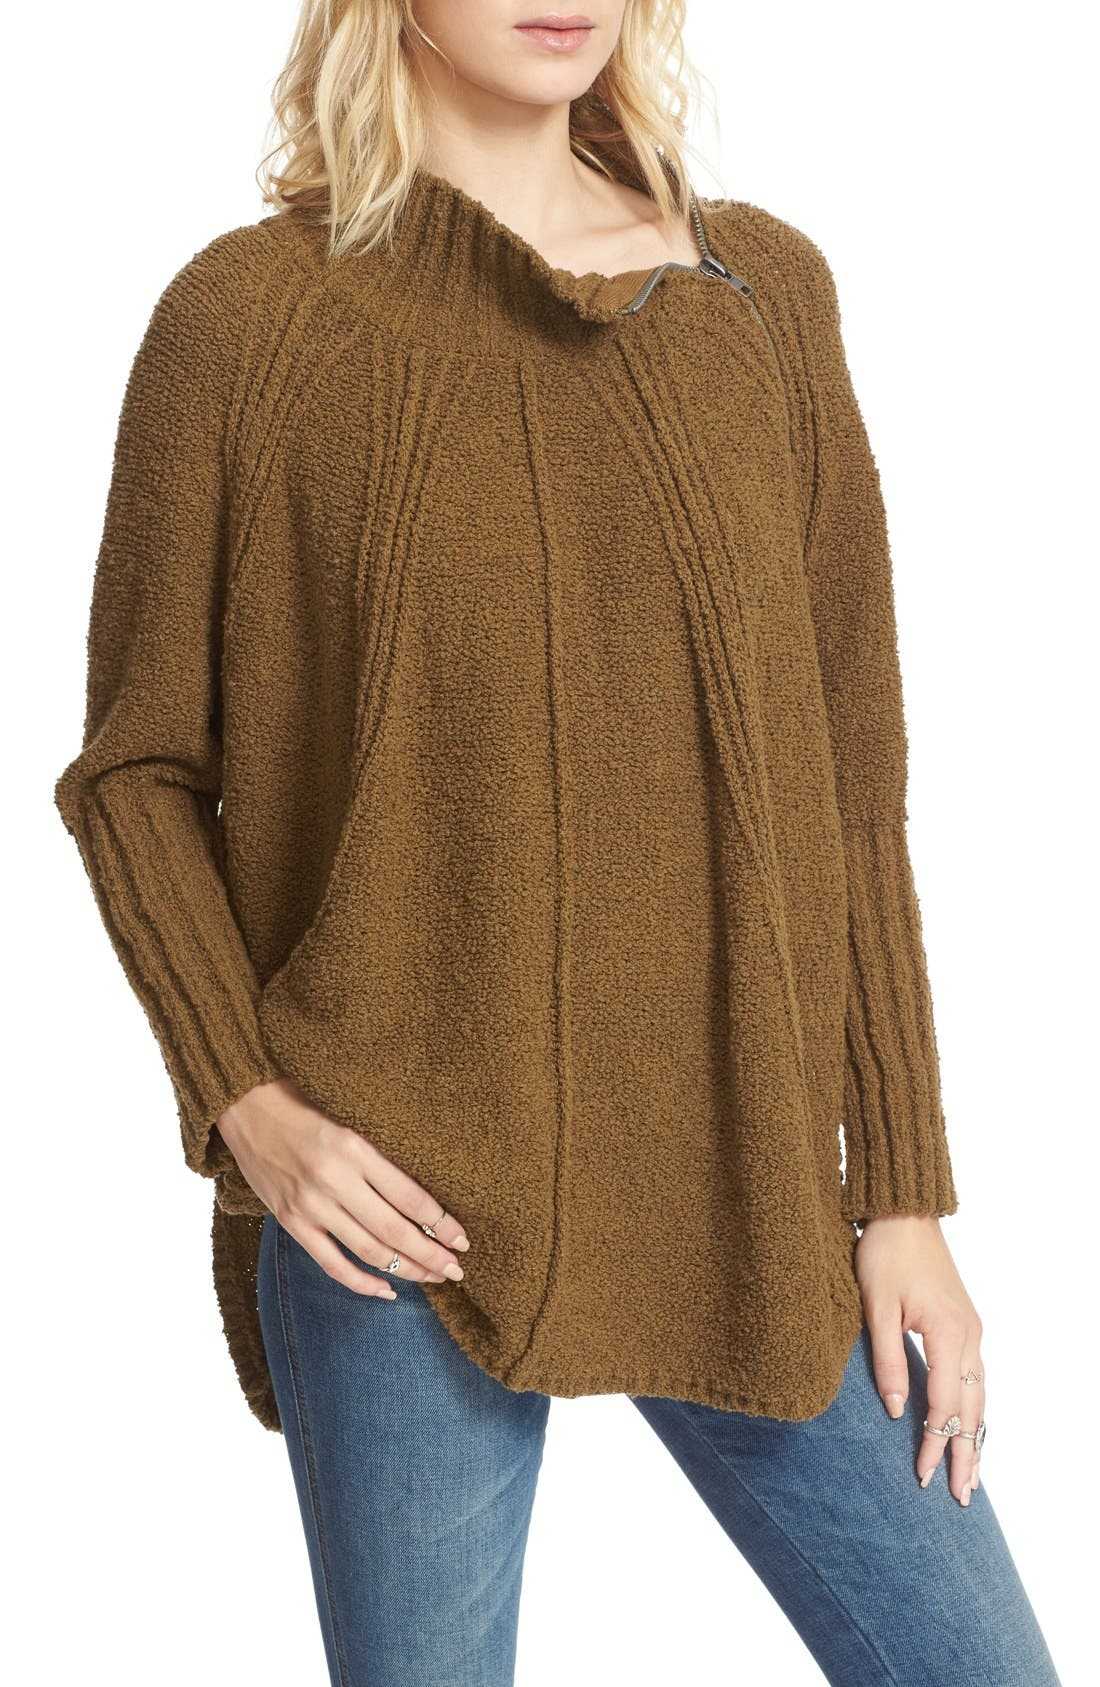 Alternate Image 1 Selected - Free People Spin Around Poncho Sweater